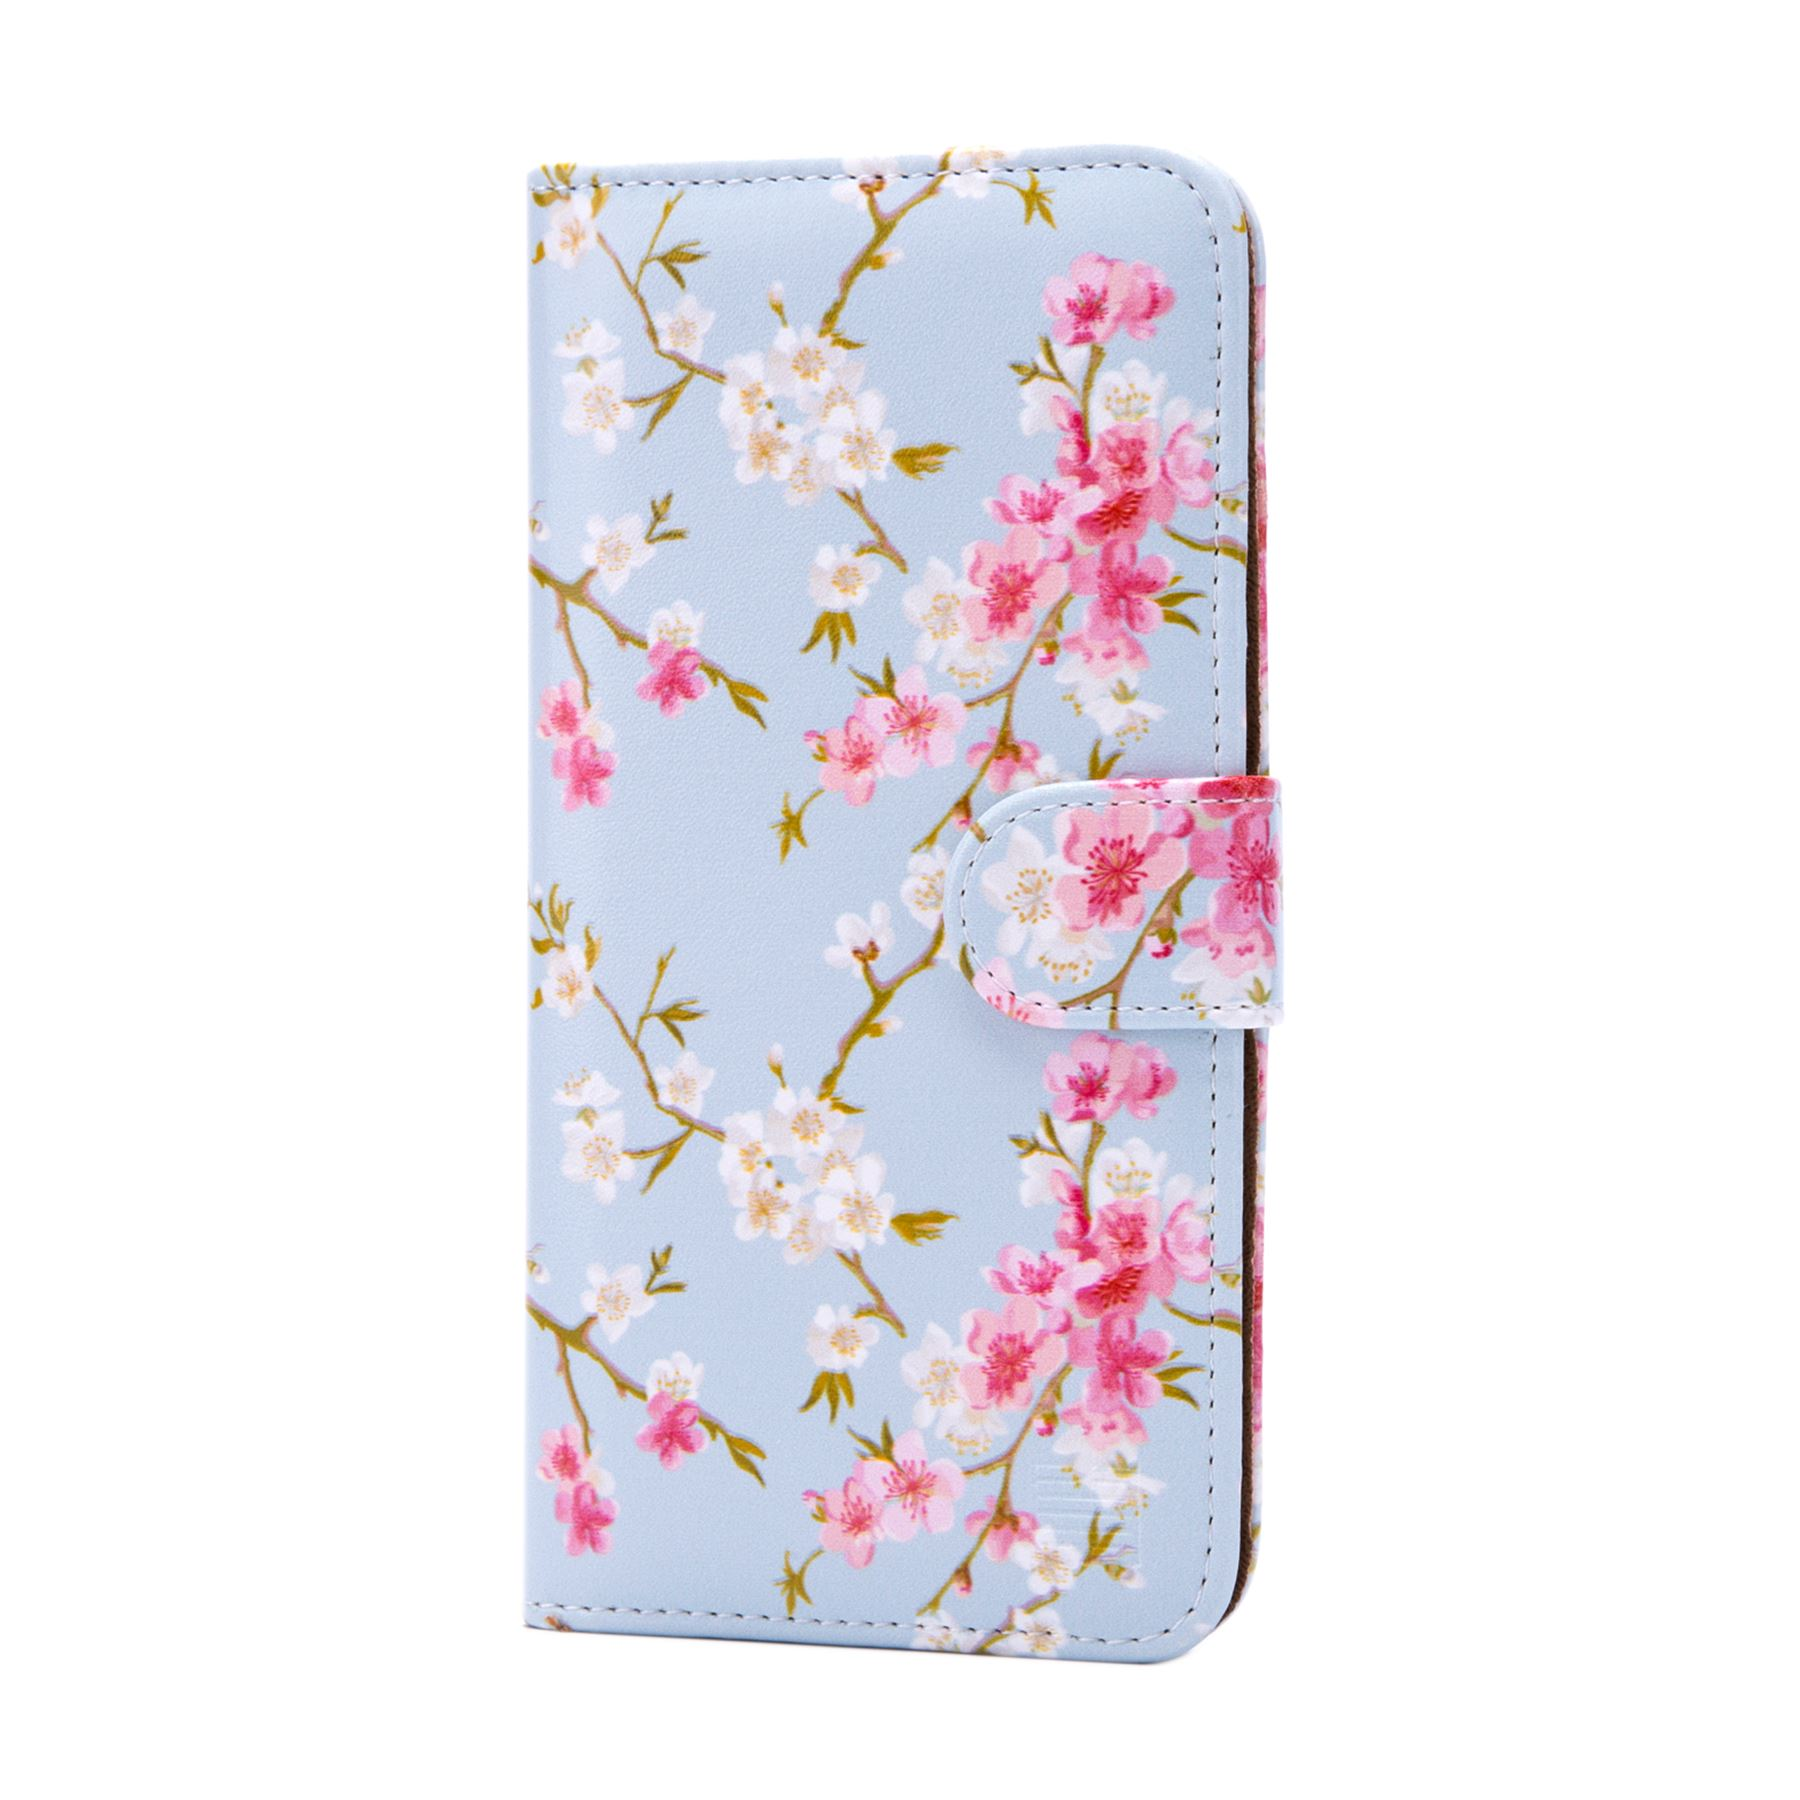 PU-Leather-Floral-Design-Book-Wallet-Case-Cover-For-Google-Pixel thumbnail 32